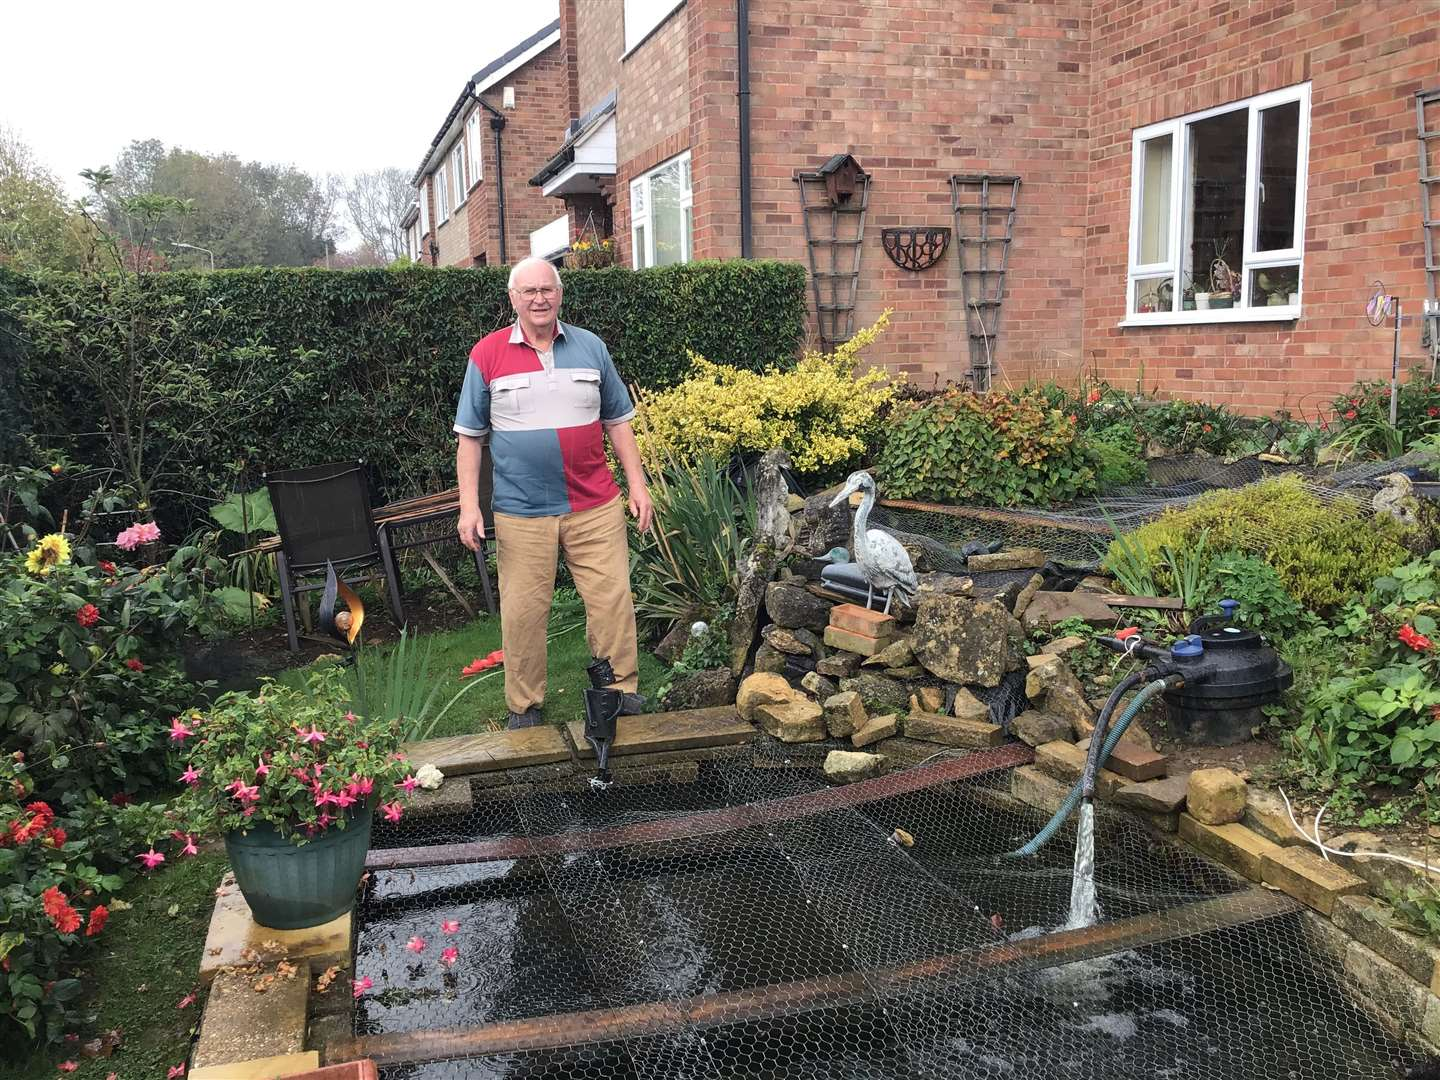 Ken Smith with his pond, which was emptied of fish by an otter.Photo: Ruth Smith